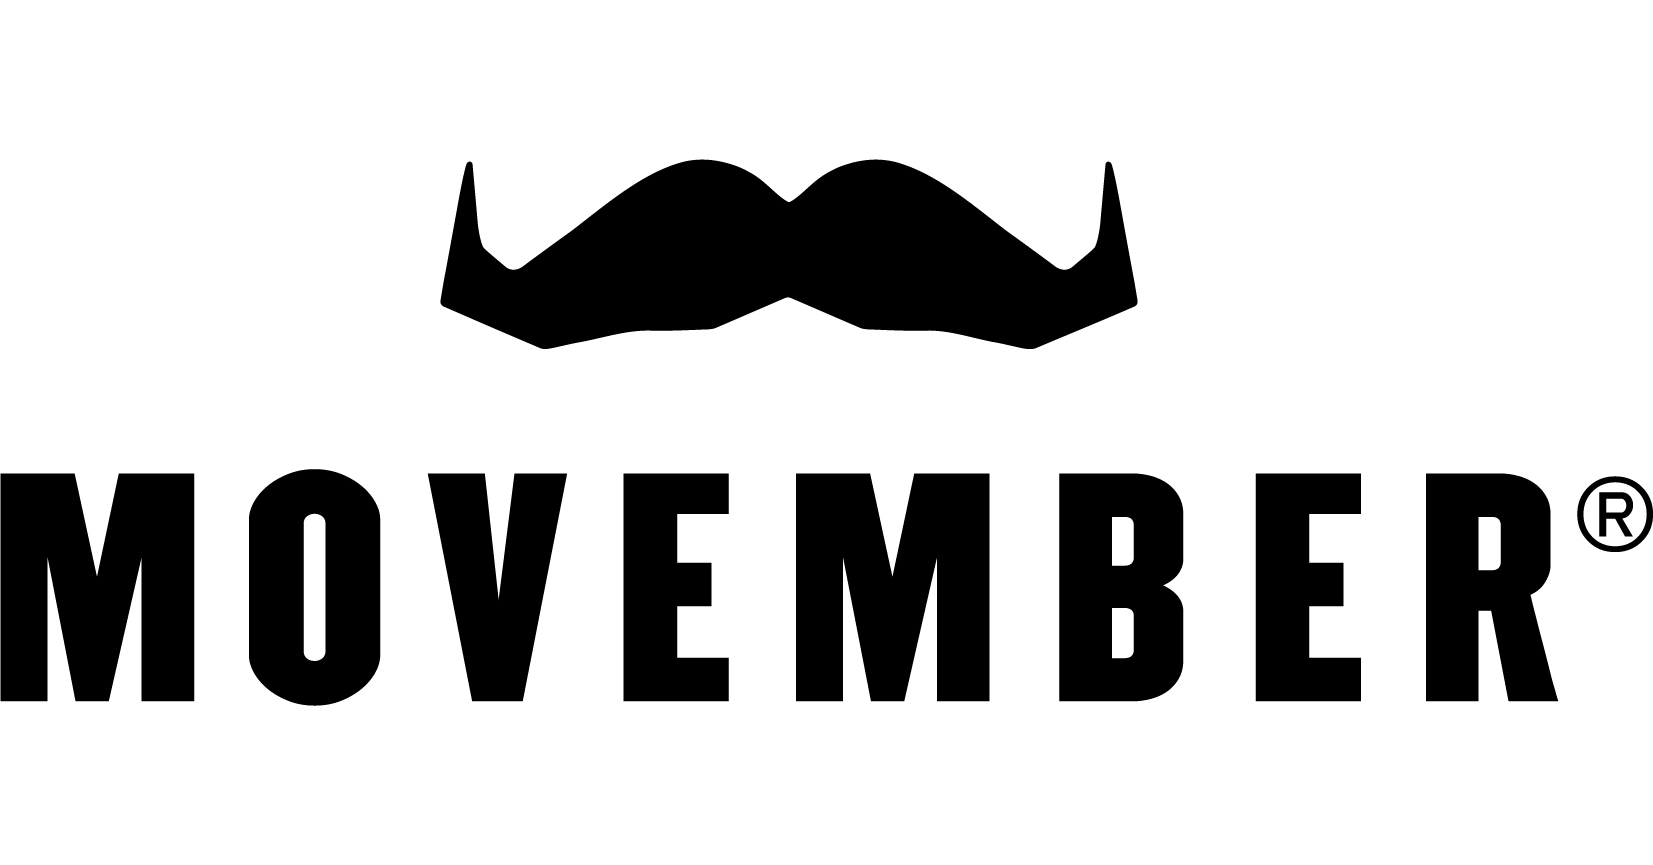 Score A Touchdown With Visa And The Movember Foundation